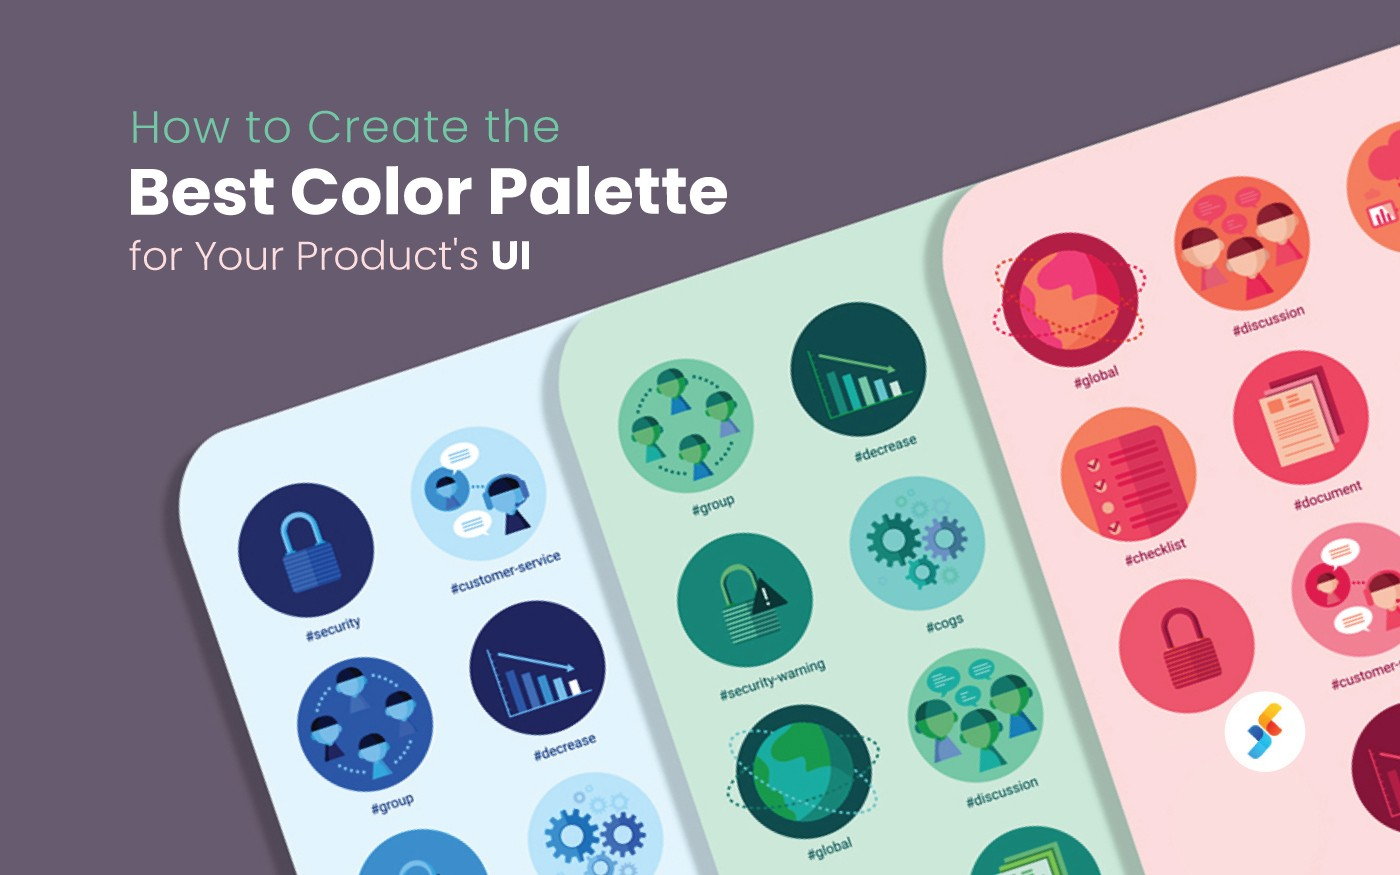 How to Create the Best Color Palette for Your Product's UI